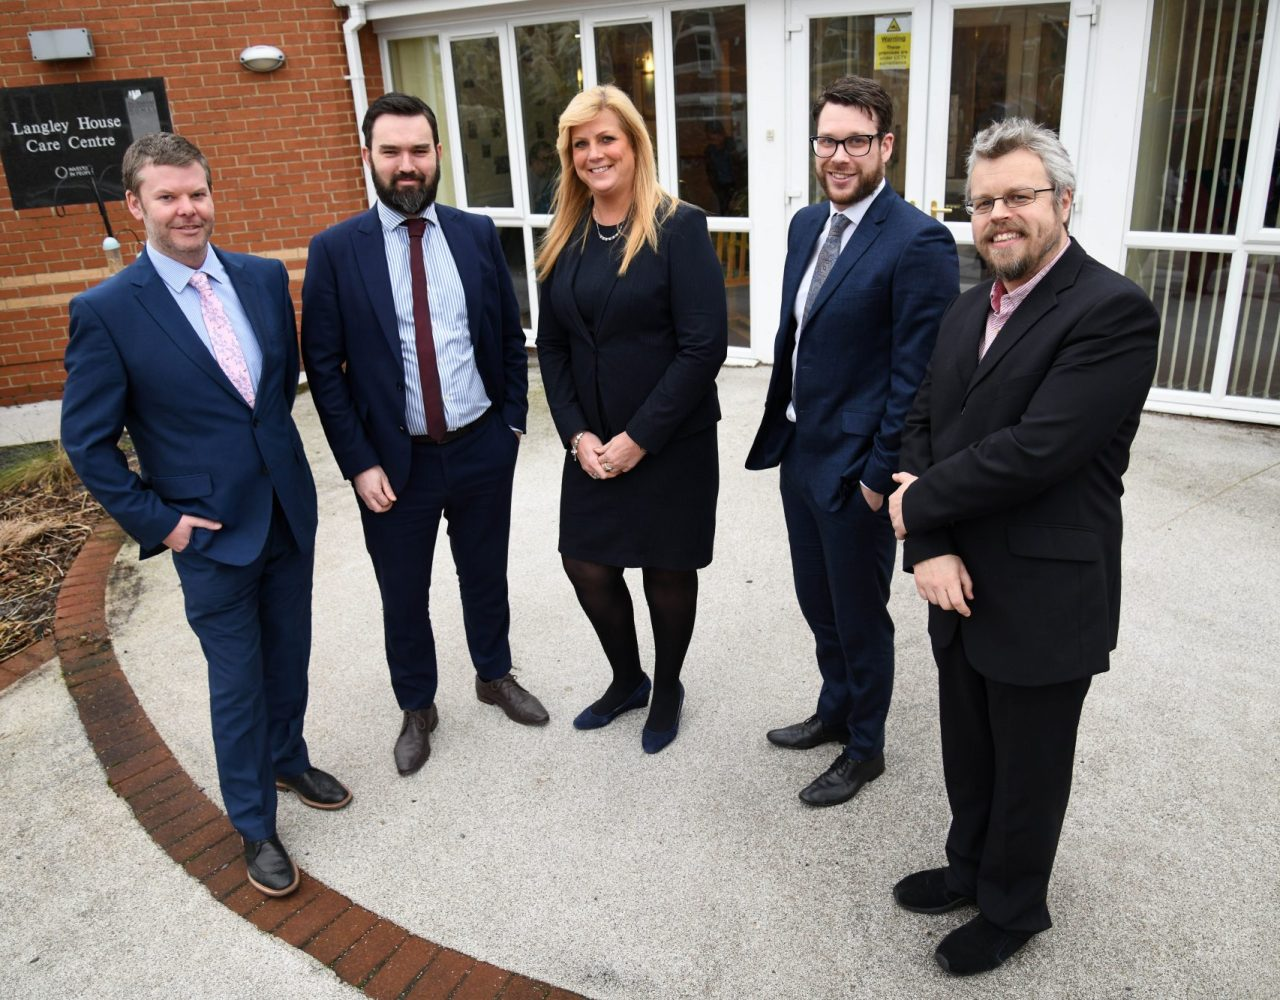 Care professional takes the reins after acquiring Horden care home